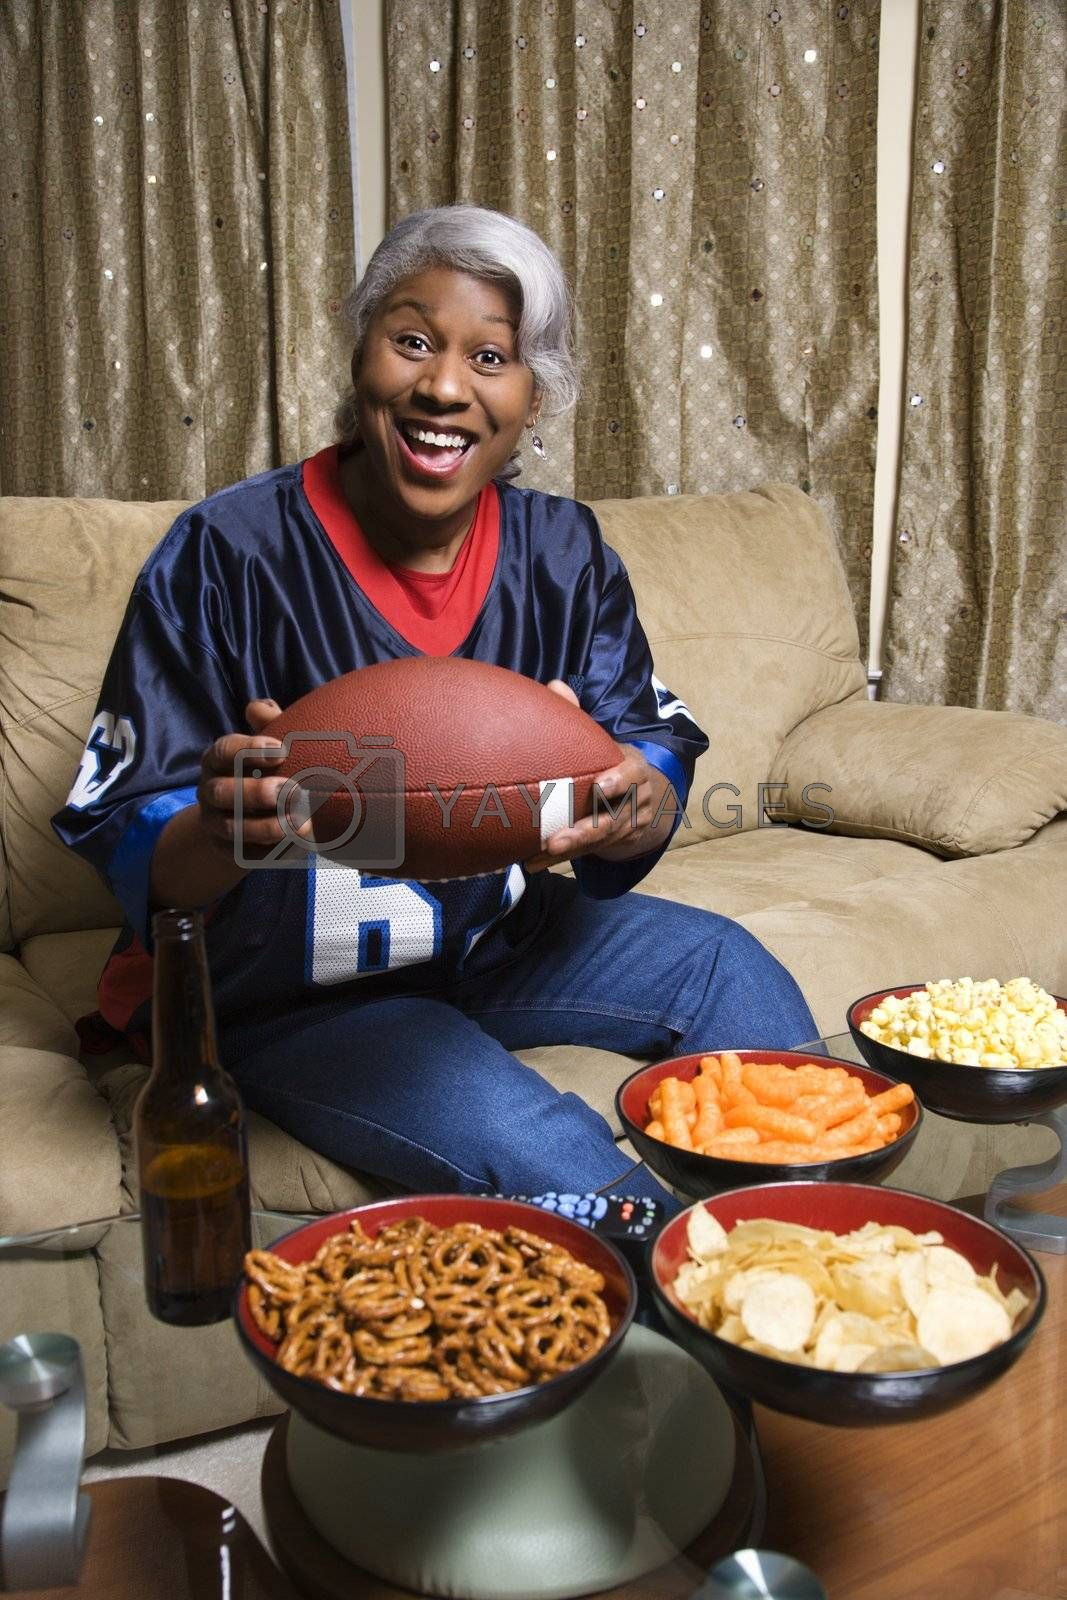 Portrait of smiling Middle-aged African-American woman wearing jersey and holding football.